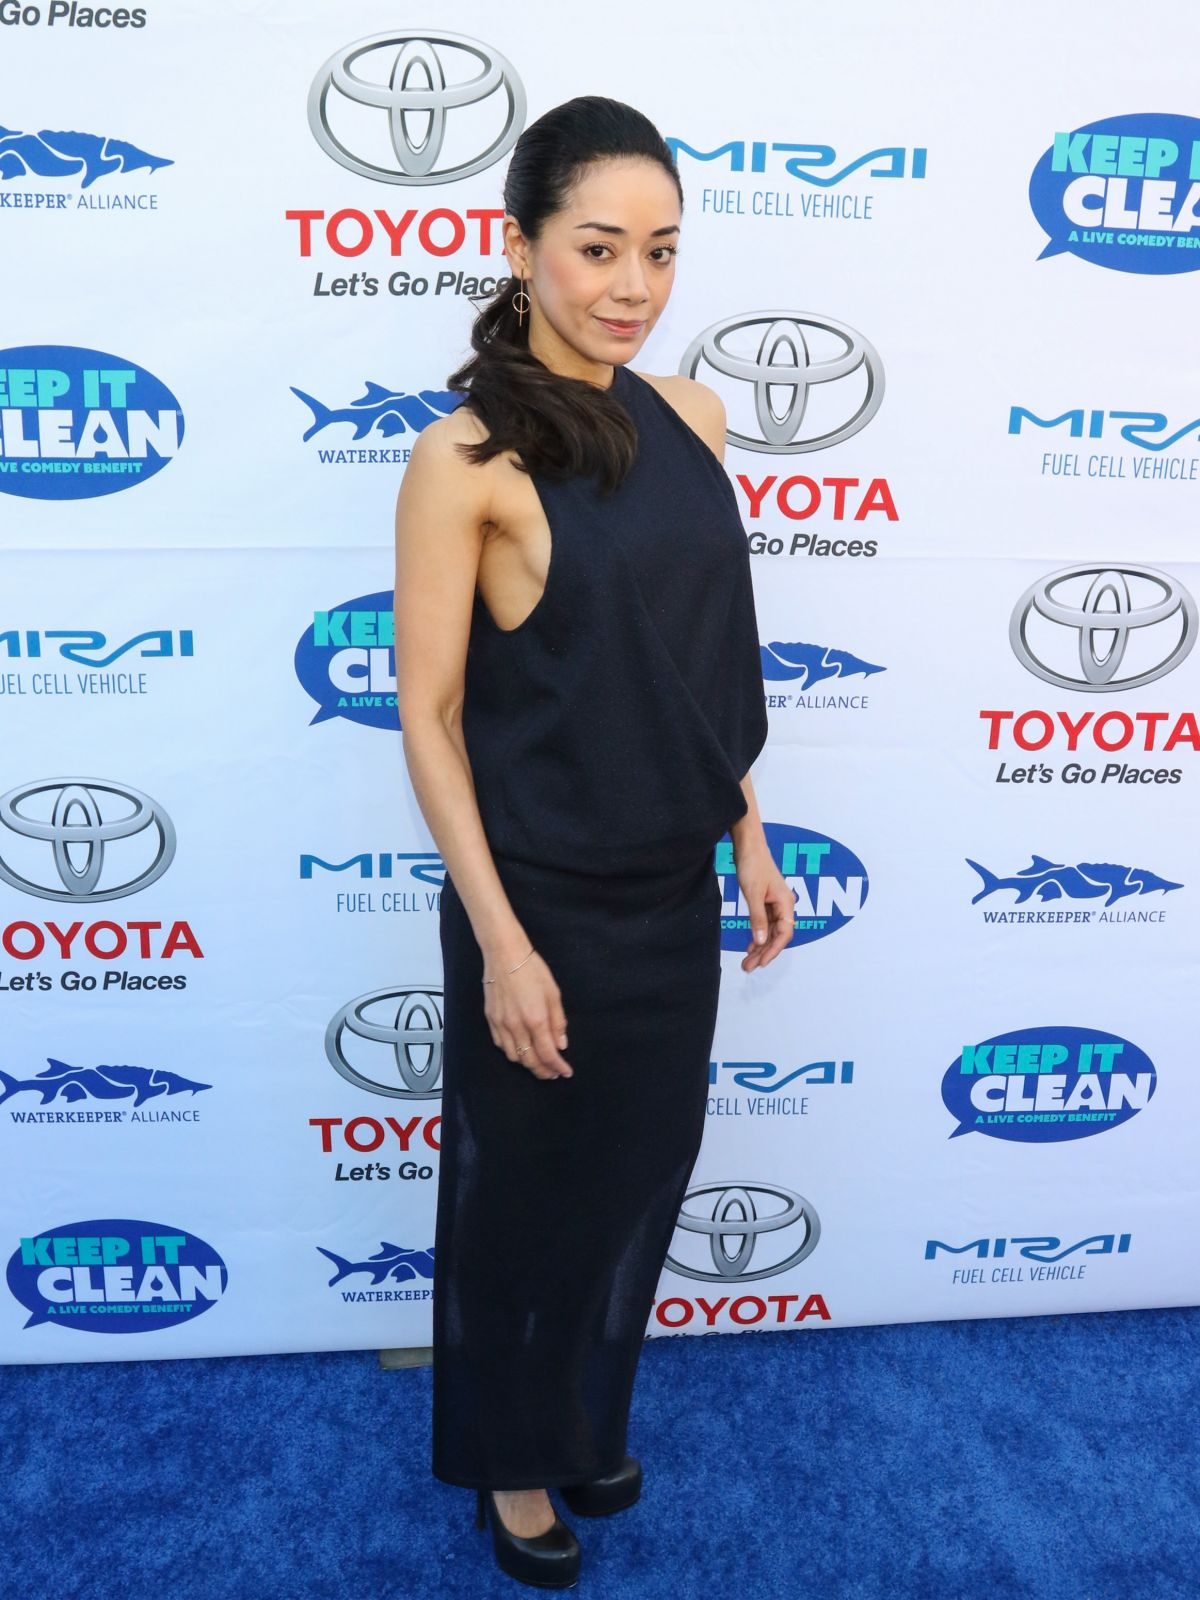 AIMEE GARCIA at Keep It Clean Comedy Benefit in Los Angeles 04/21/2017